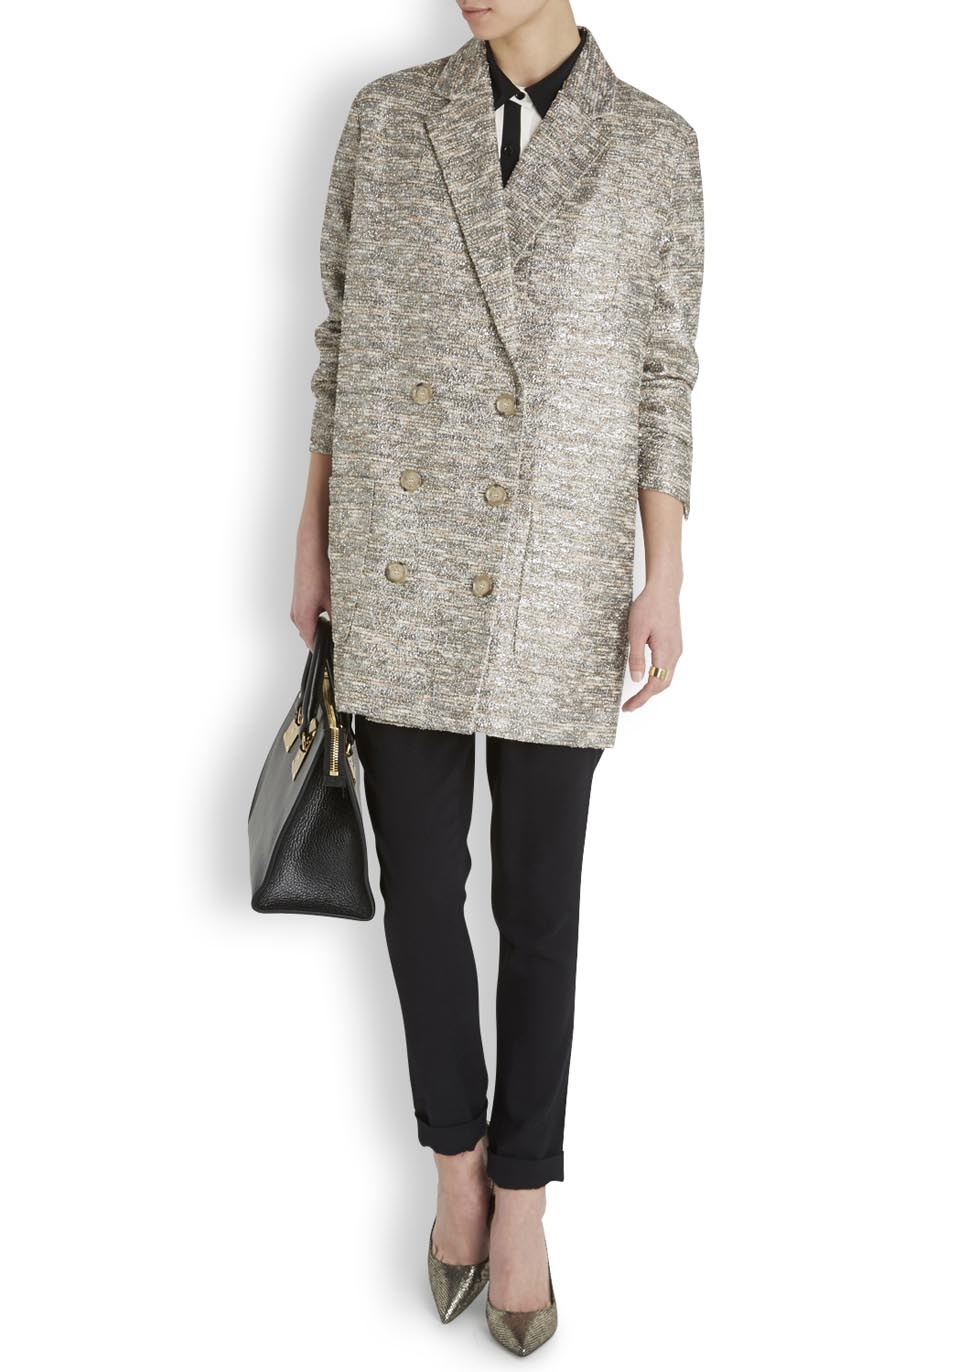 Marc by marc jacobs Silver And Cream Metallic Tweed Coat in ...